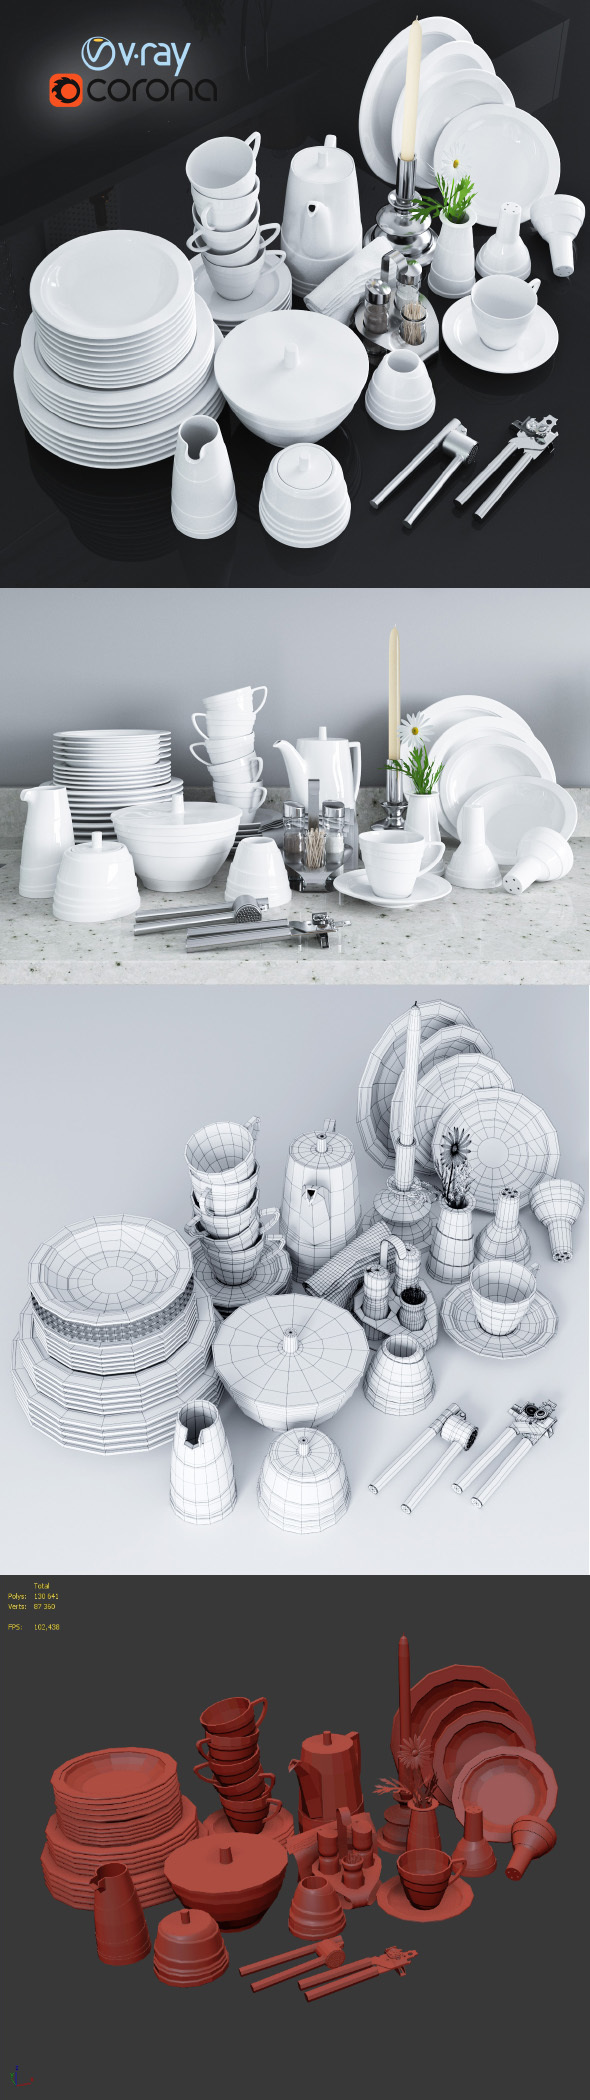 A set of dishes and kitchen appliances - 3DOcean Item for Sale